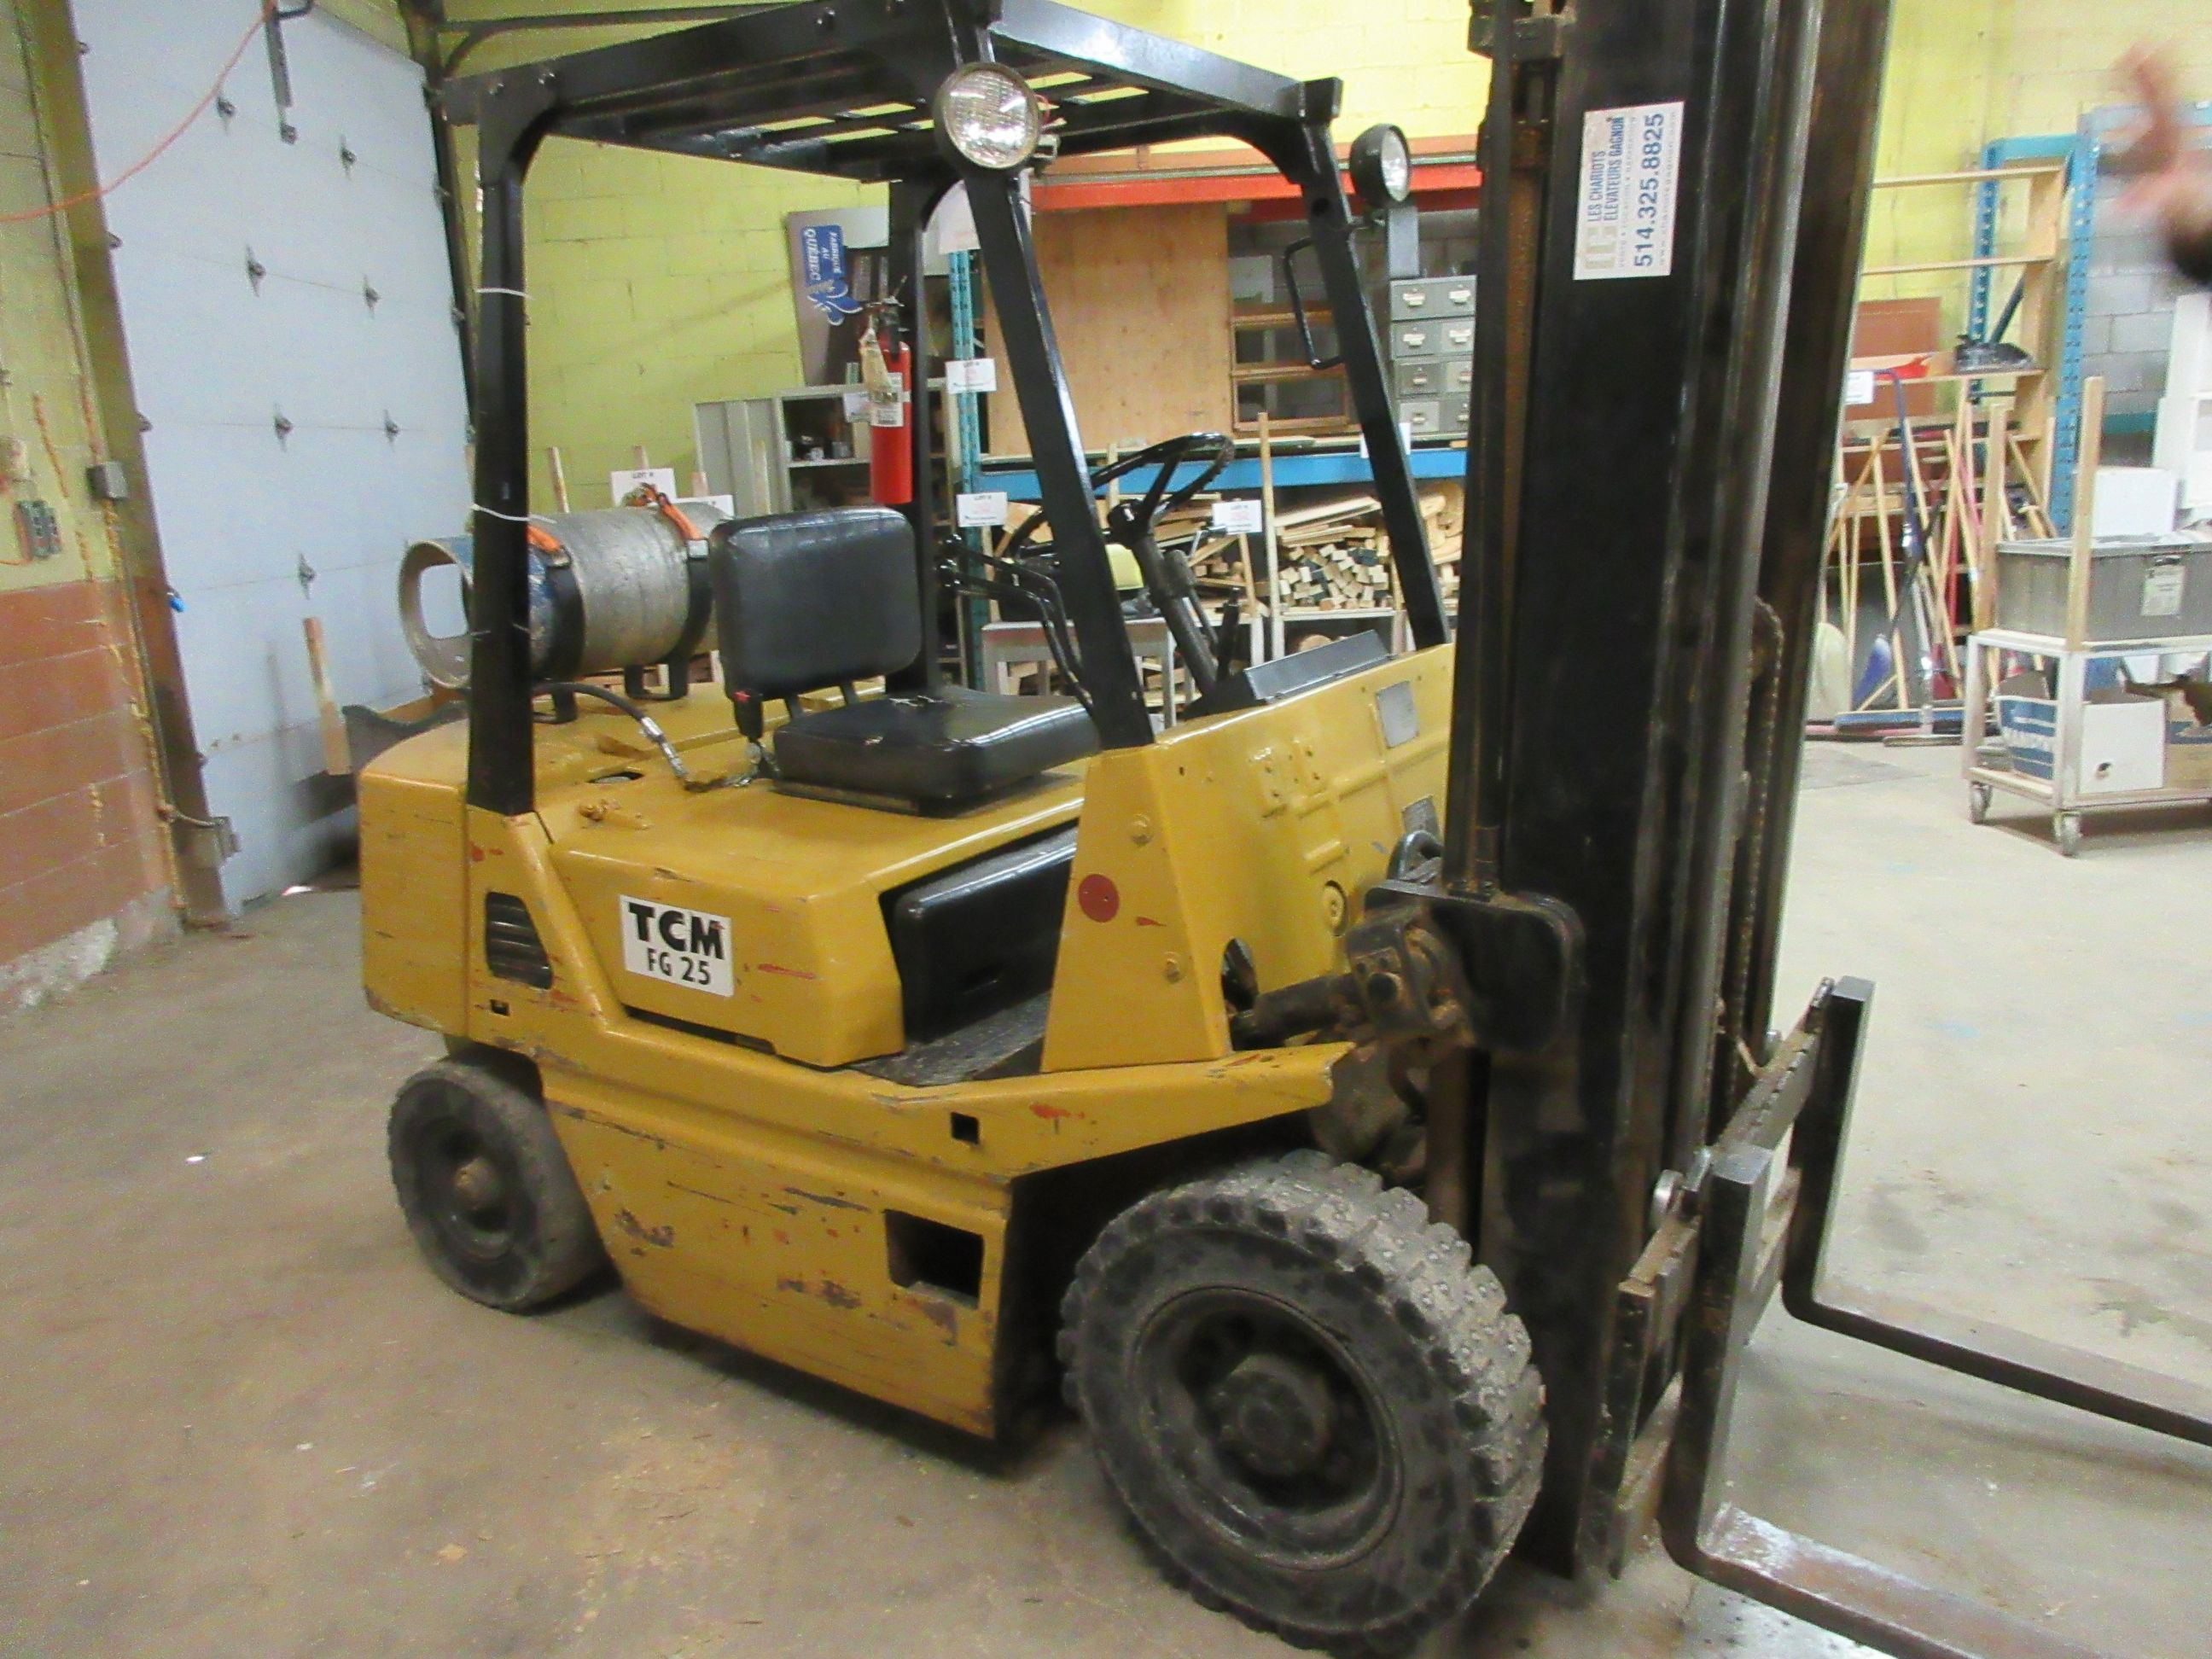 TCM propane forklift, Mod: FG25, 3 sections, CAP: 5,000 lbs - Image 5 of 6